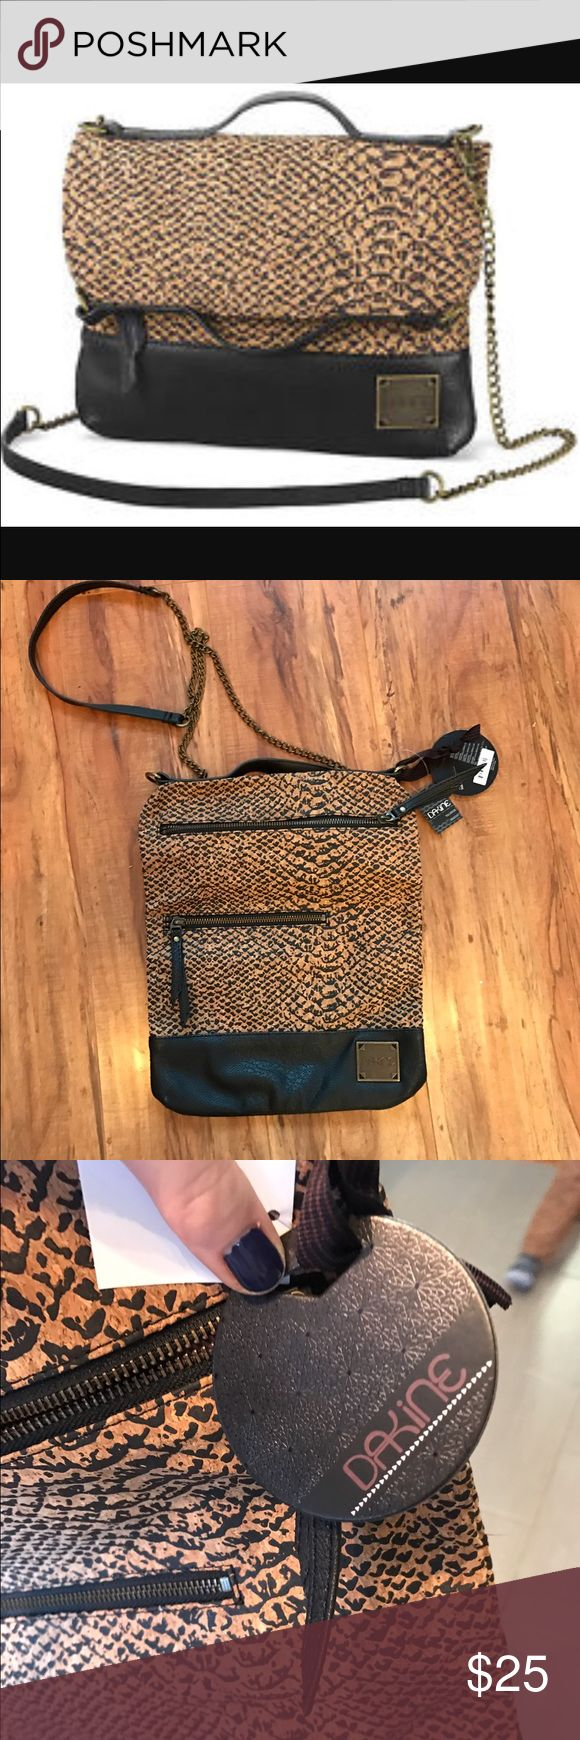 """Dakine Valerie purse Dakine """"Valerie"""" fold over purse with Burton closure. Over the shoulder strap with chain and faux leather. Small strap on the bag to use as hand bag. One large zipper opening and one  small zipper opening. New with tags Dakine Bags Crossbody Bags"""